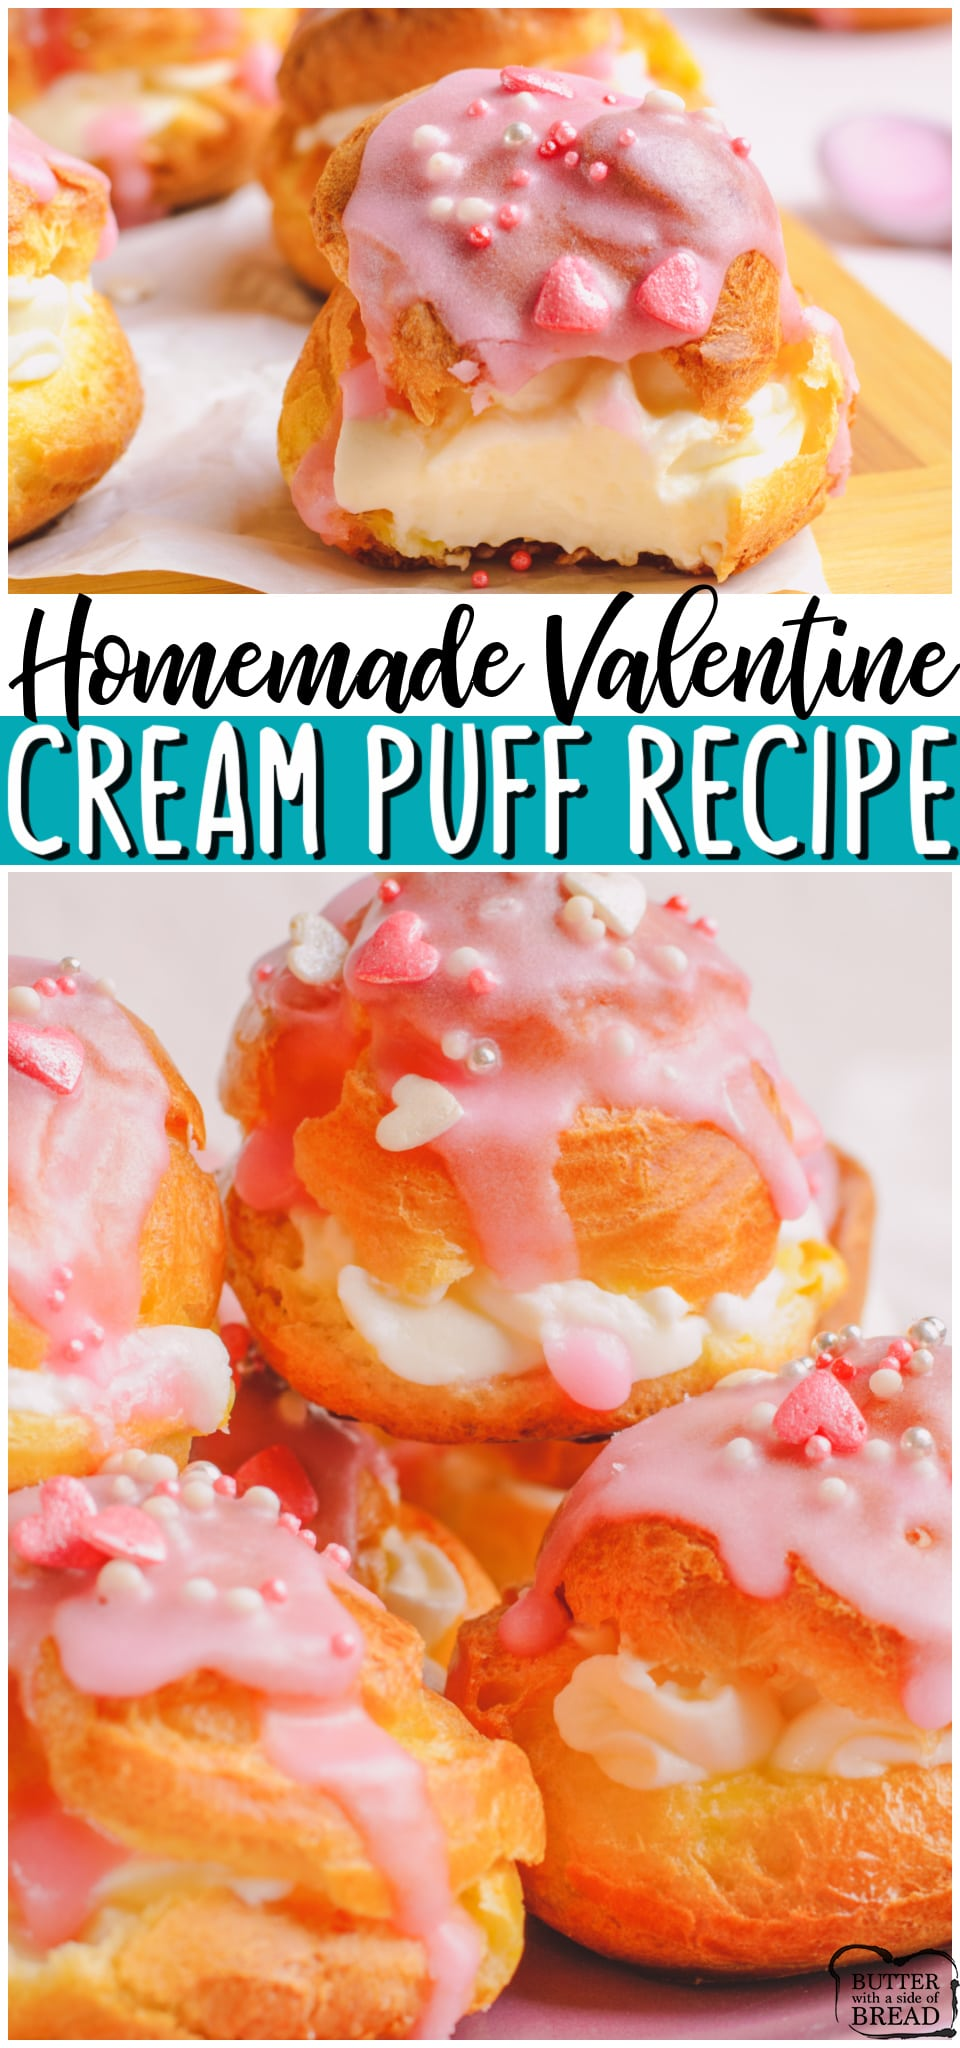 Valentine's Day Cream Puffs made with a homemade pastry, filled with sweet cream & topped with a pale pink glaze. Perfectly festive pink cream puffs recipe that everyone enjoys! #Valentines #creampuff #baking #dessert #homemade #easyrecipe from BUTTER WITH A SIDE OF BREAD